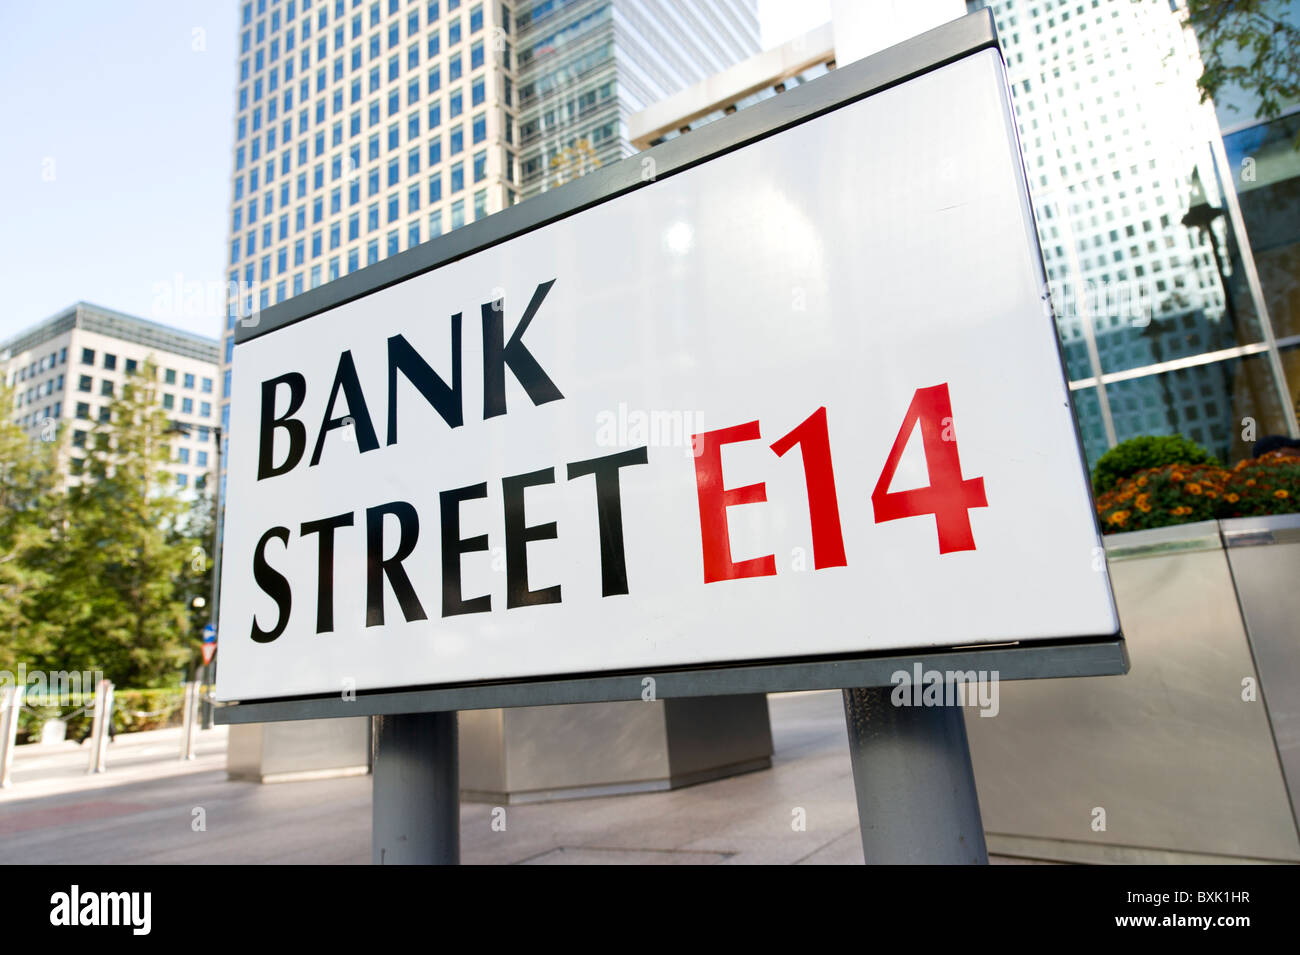 Bank Street in Canary Wharf, London, UK - Stock Image